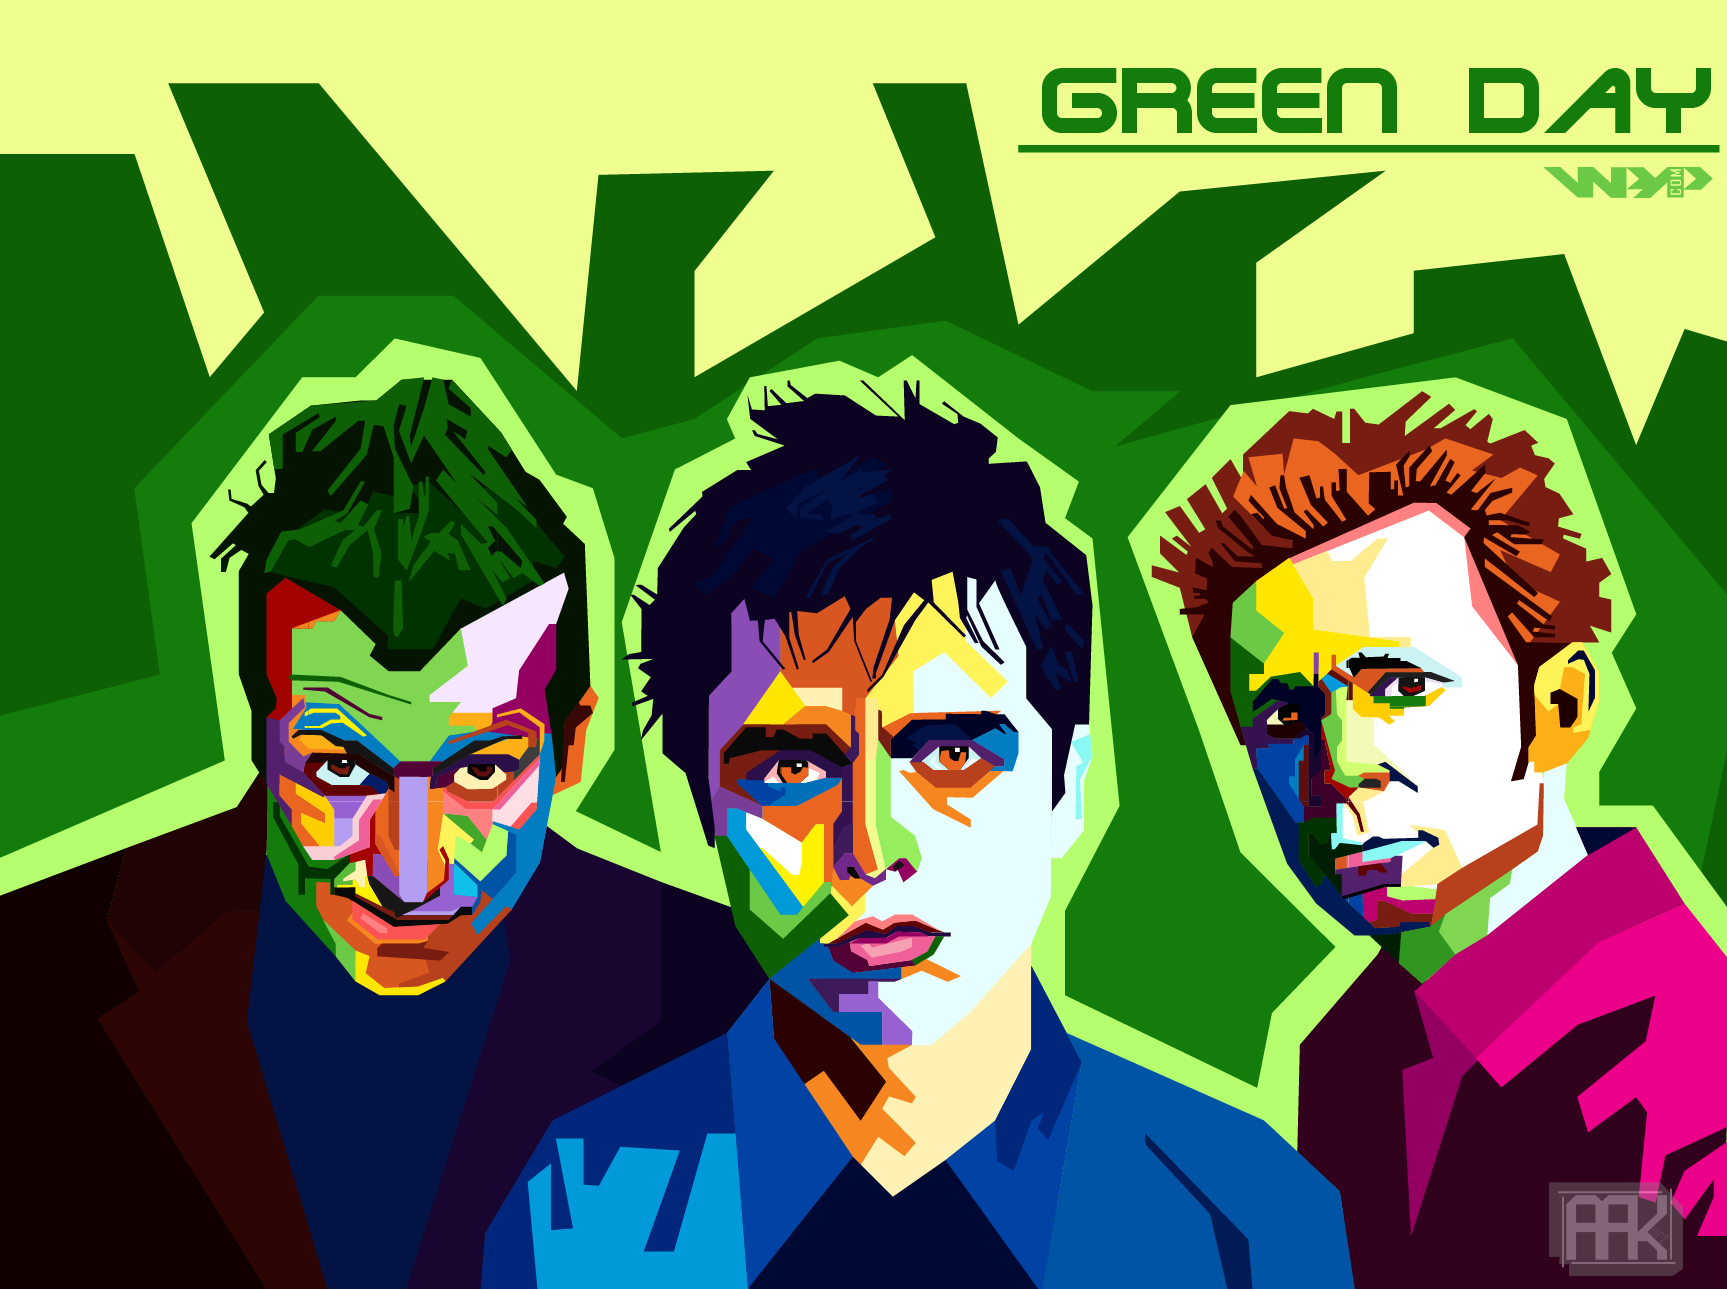 Green Day In Wpap My Favorite Band